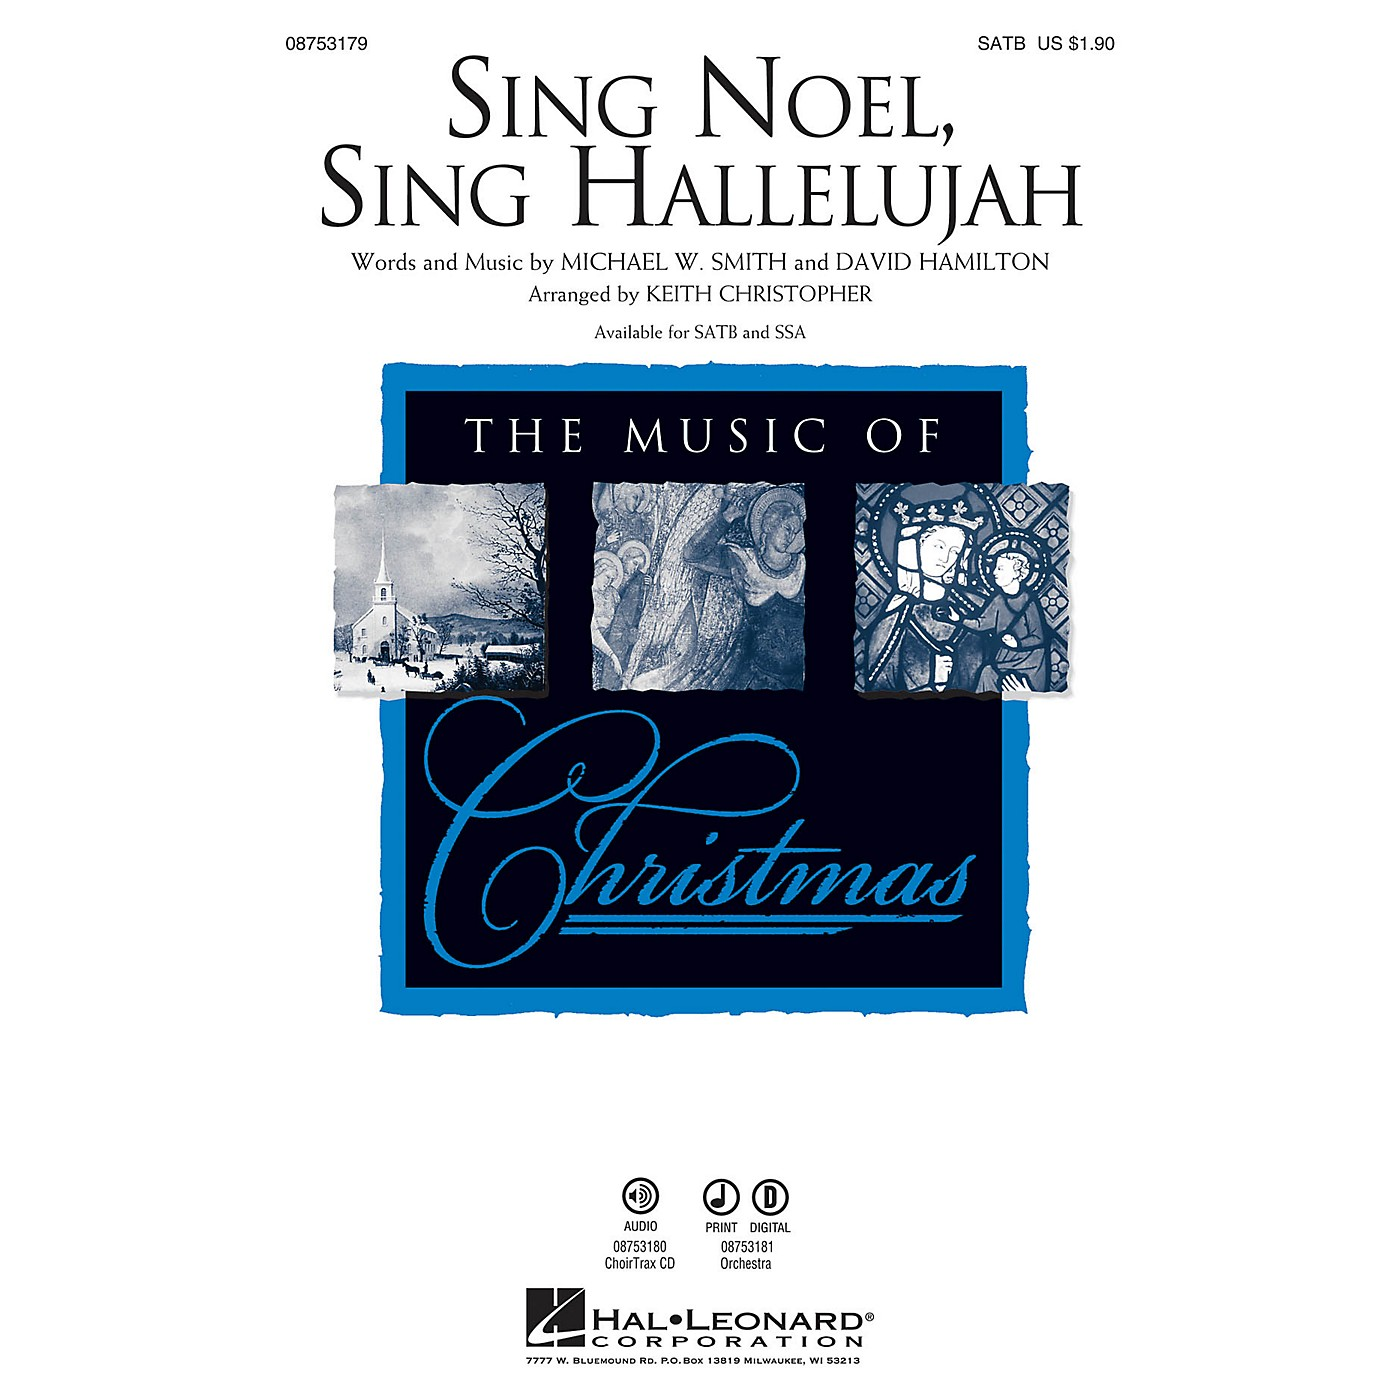 Hal Leonard Sing Noel, Sing Hallelujah SATB by Michael W. Smith arranged by Keith Christopher thumbnail